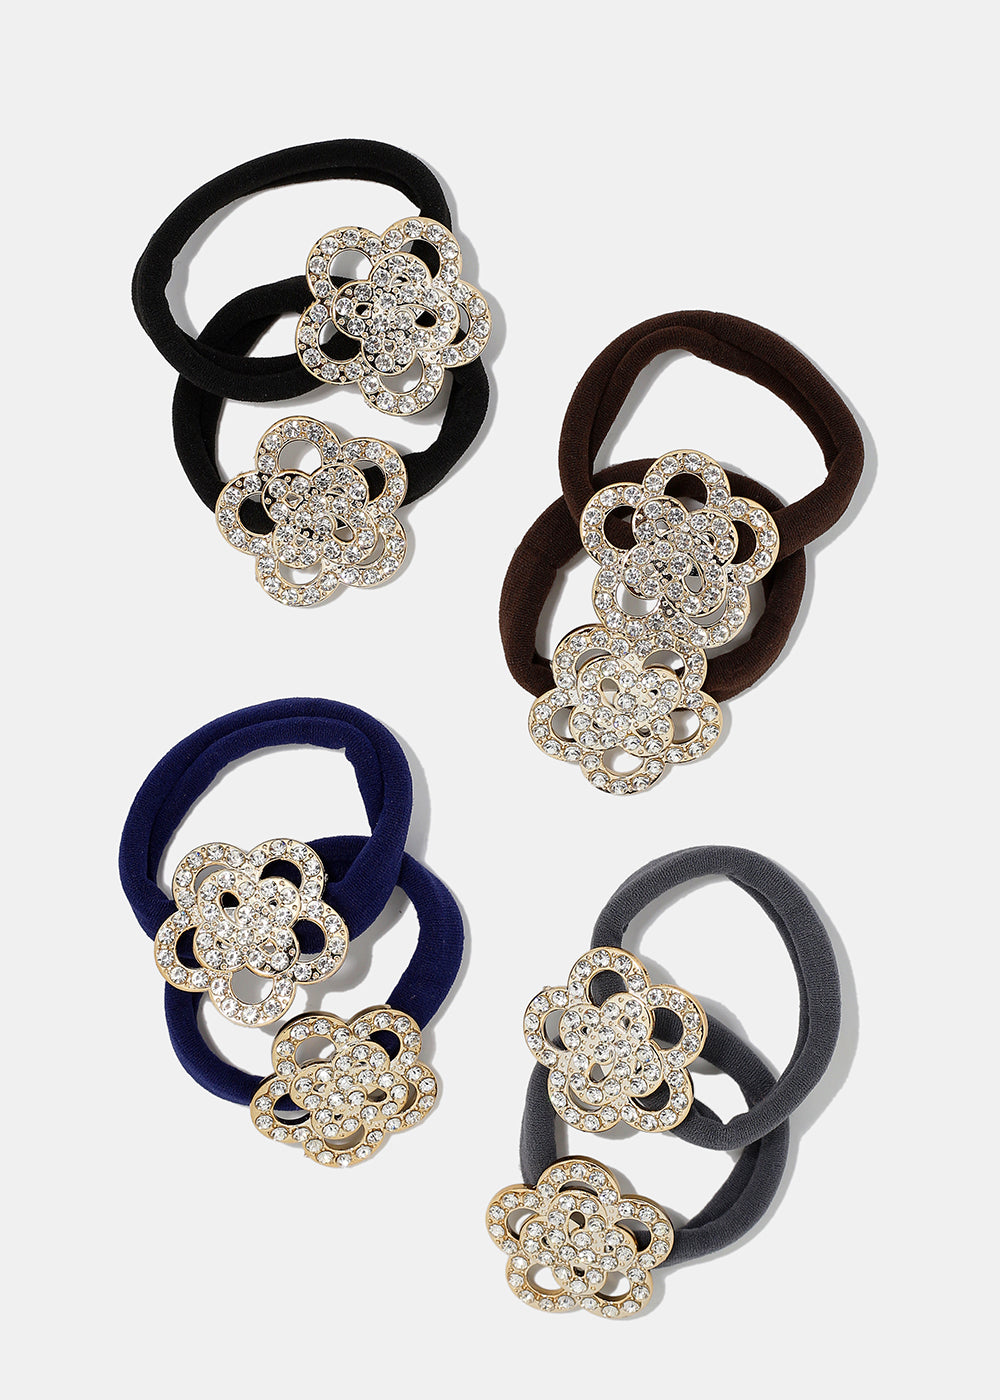 2-Piece Rhinestone Flower Hair Ties